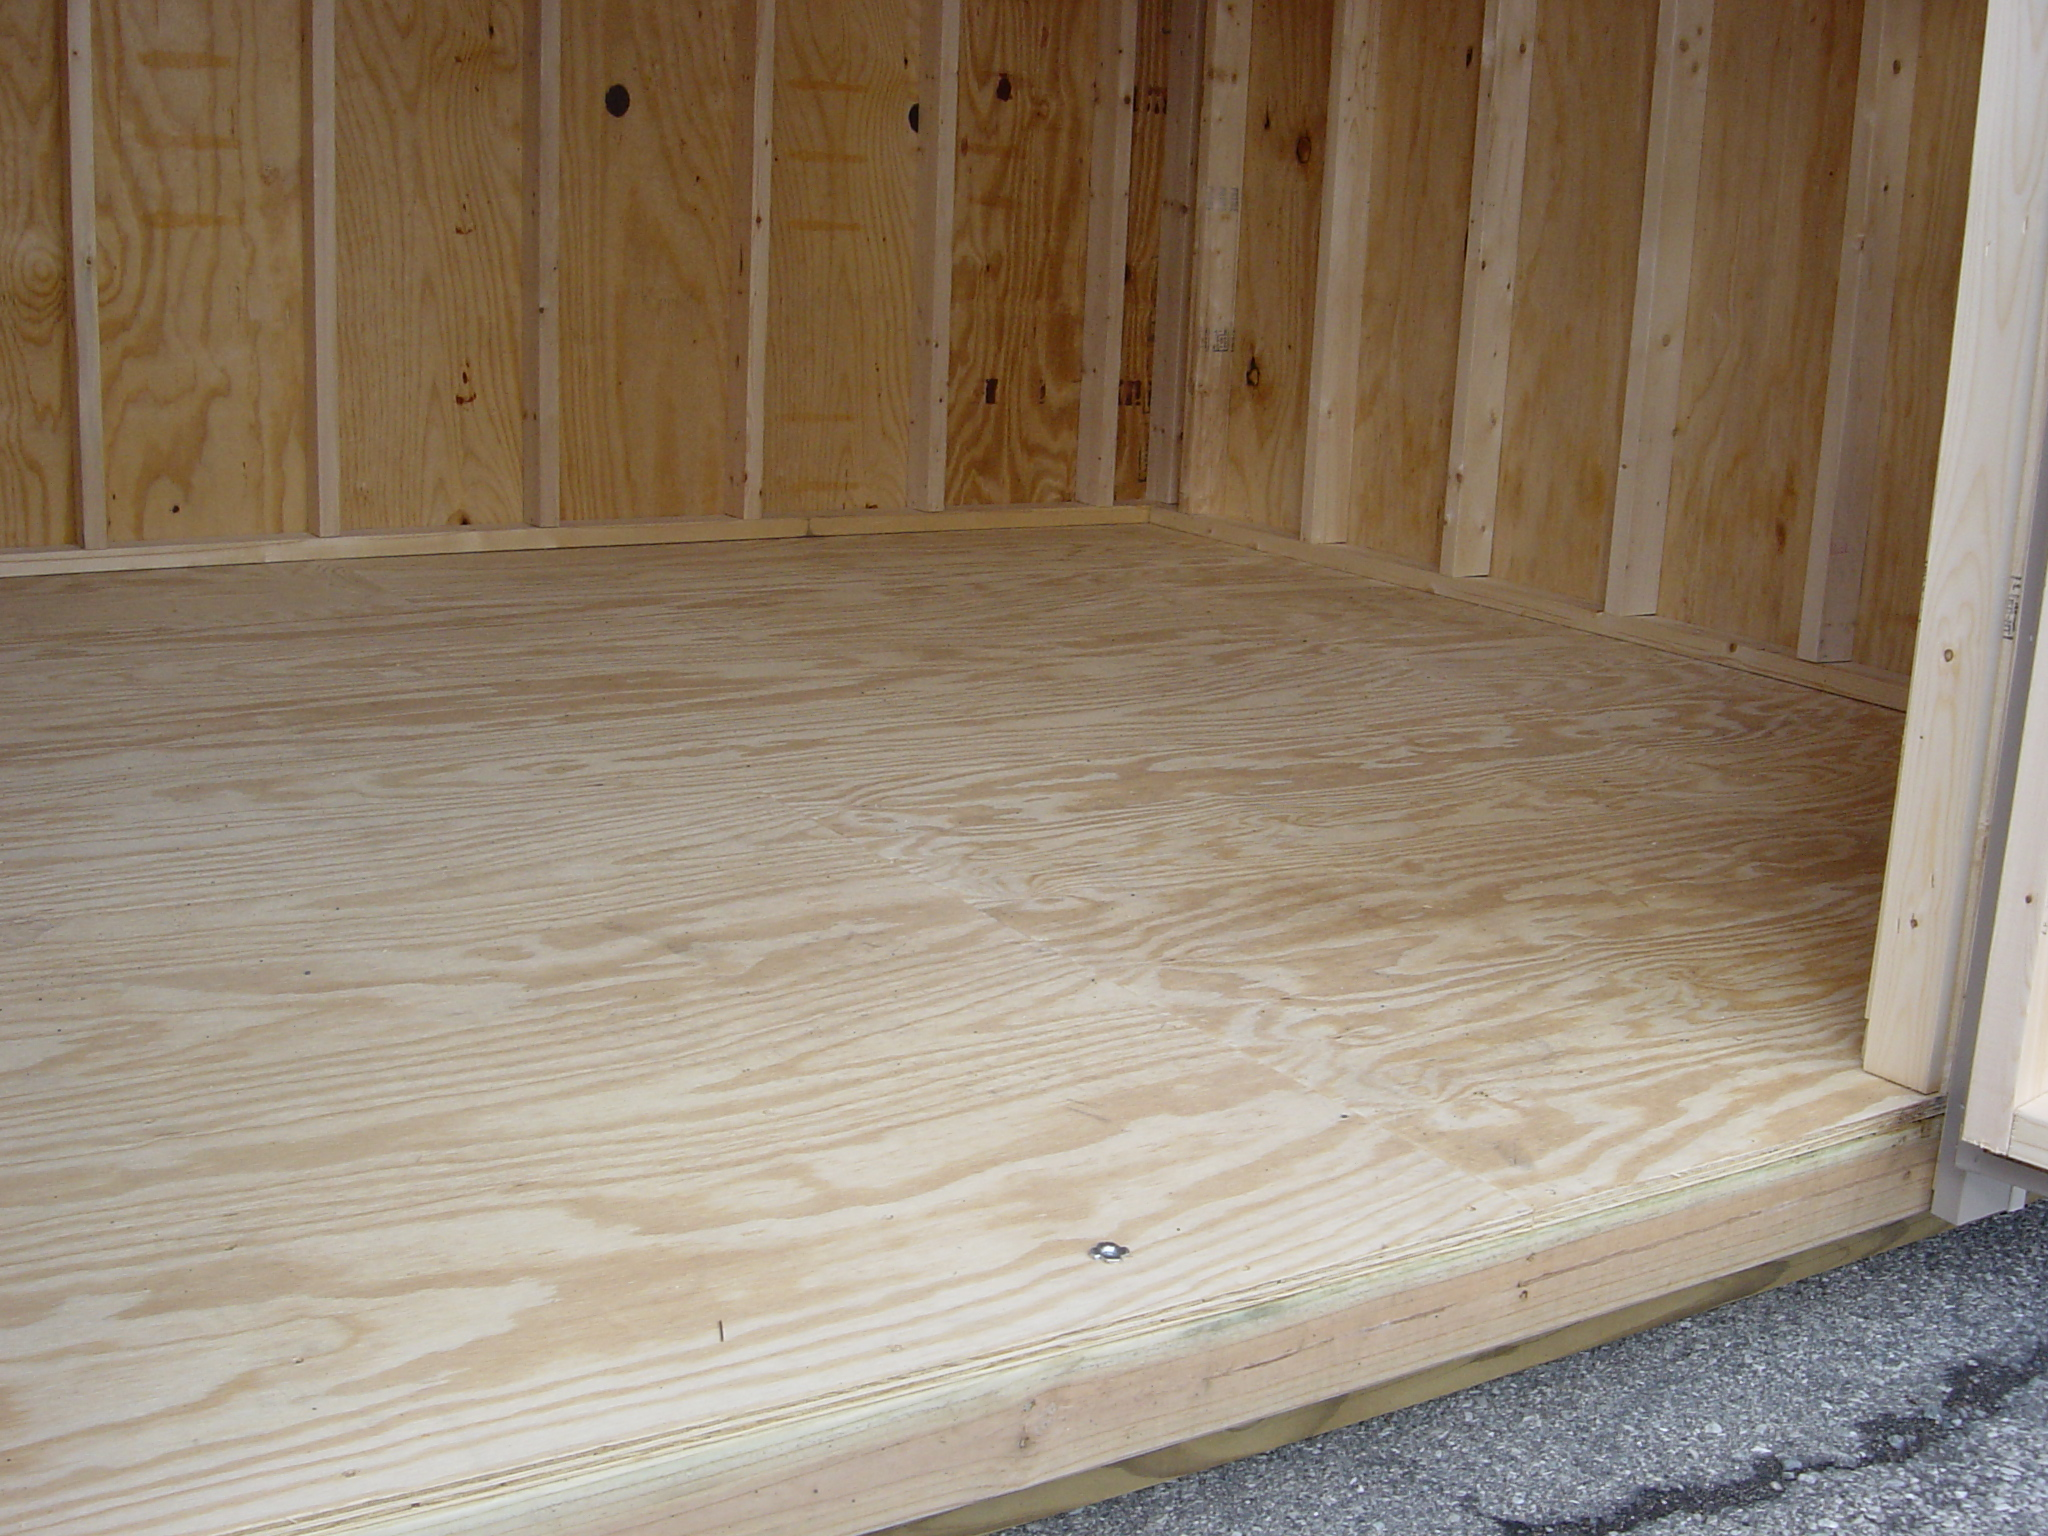 Exterior Aluminum Clad Plywood Panels : Design specs for a shed foxscountrysheds s